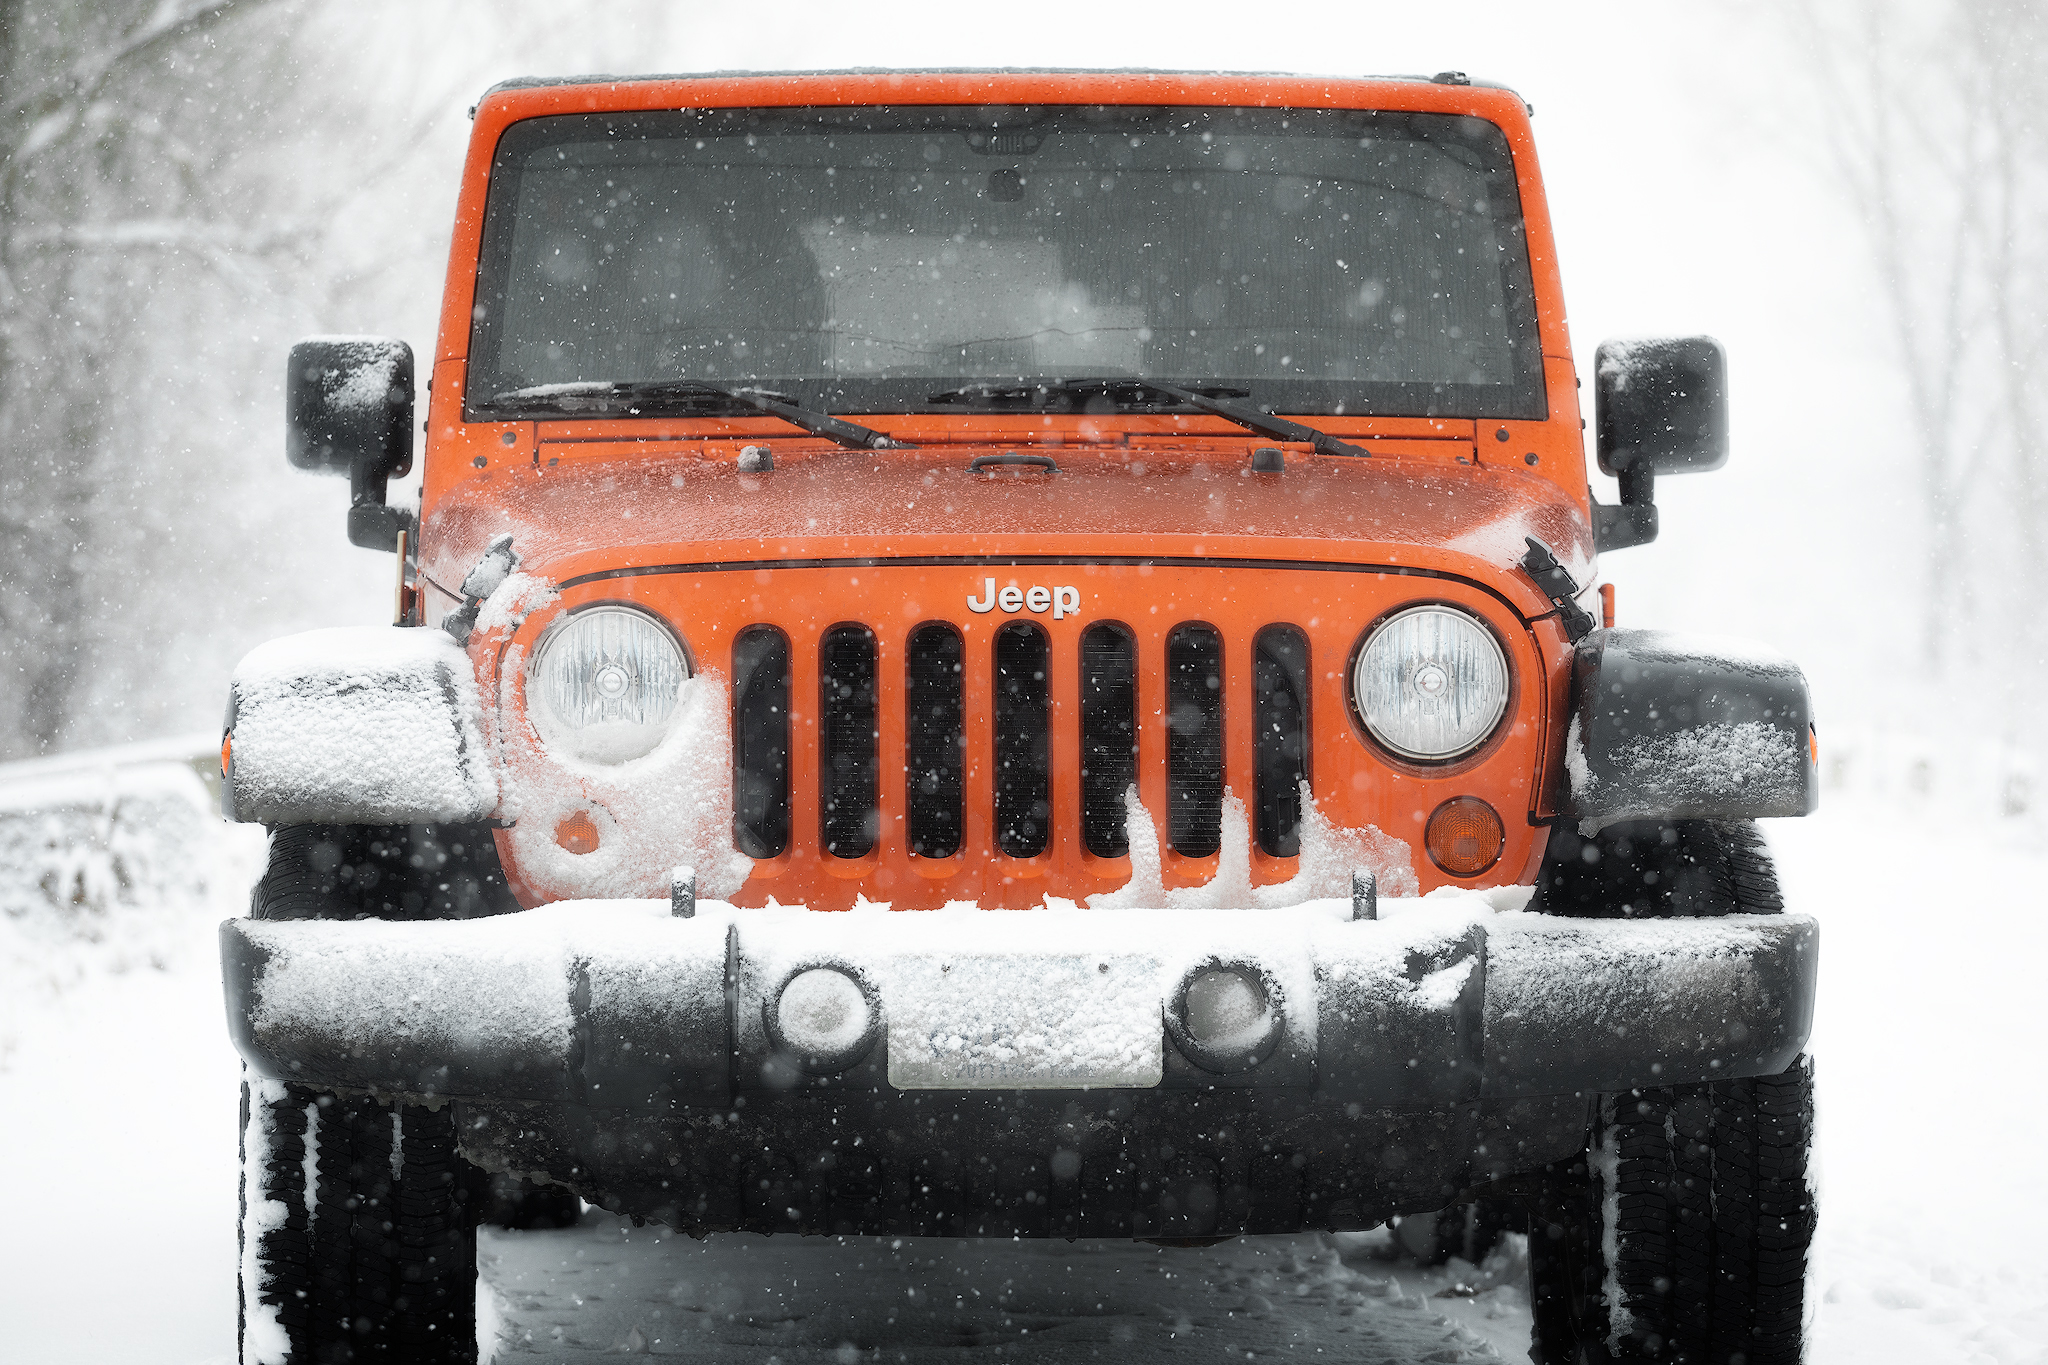 My Jeep was happy to play in the snow = ) - Handheld - 126mm - ISO 640 - f/5 - 1/800